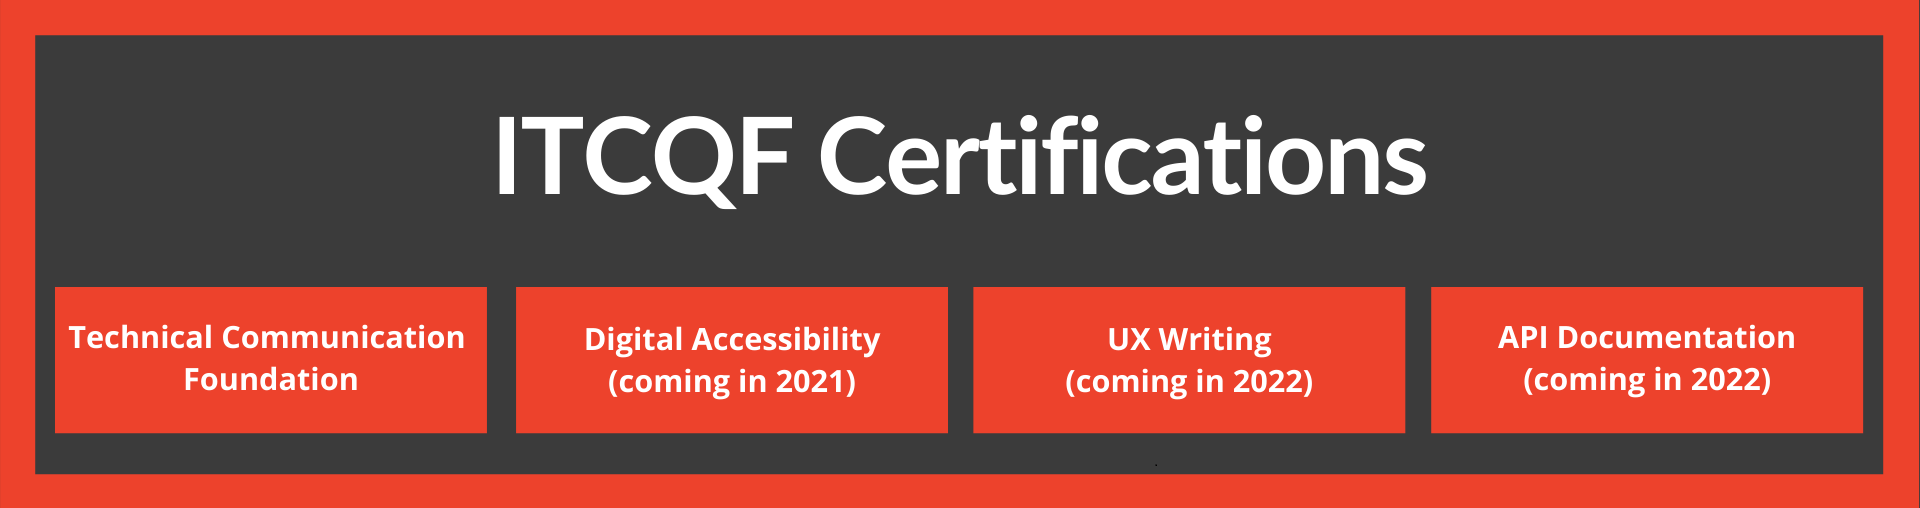 ITCQF Certifications - Foundation (released), Digital Acccessibility, UX Writing, API Documentation (future)